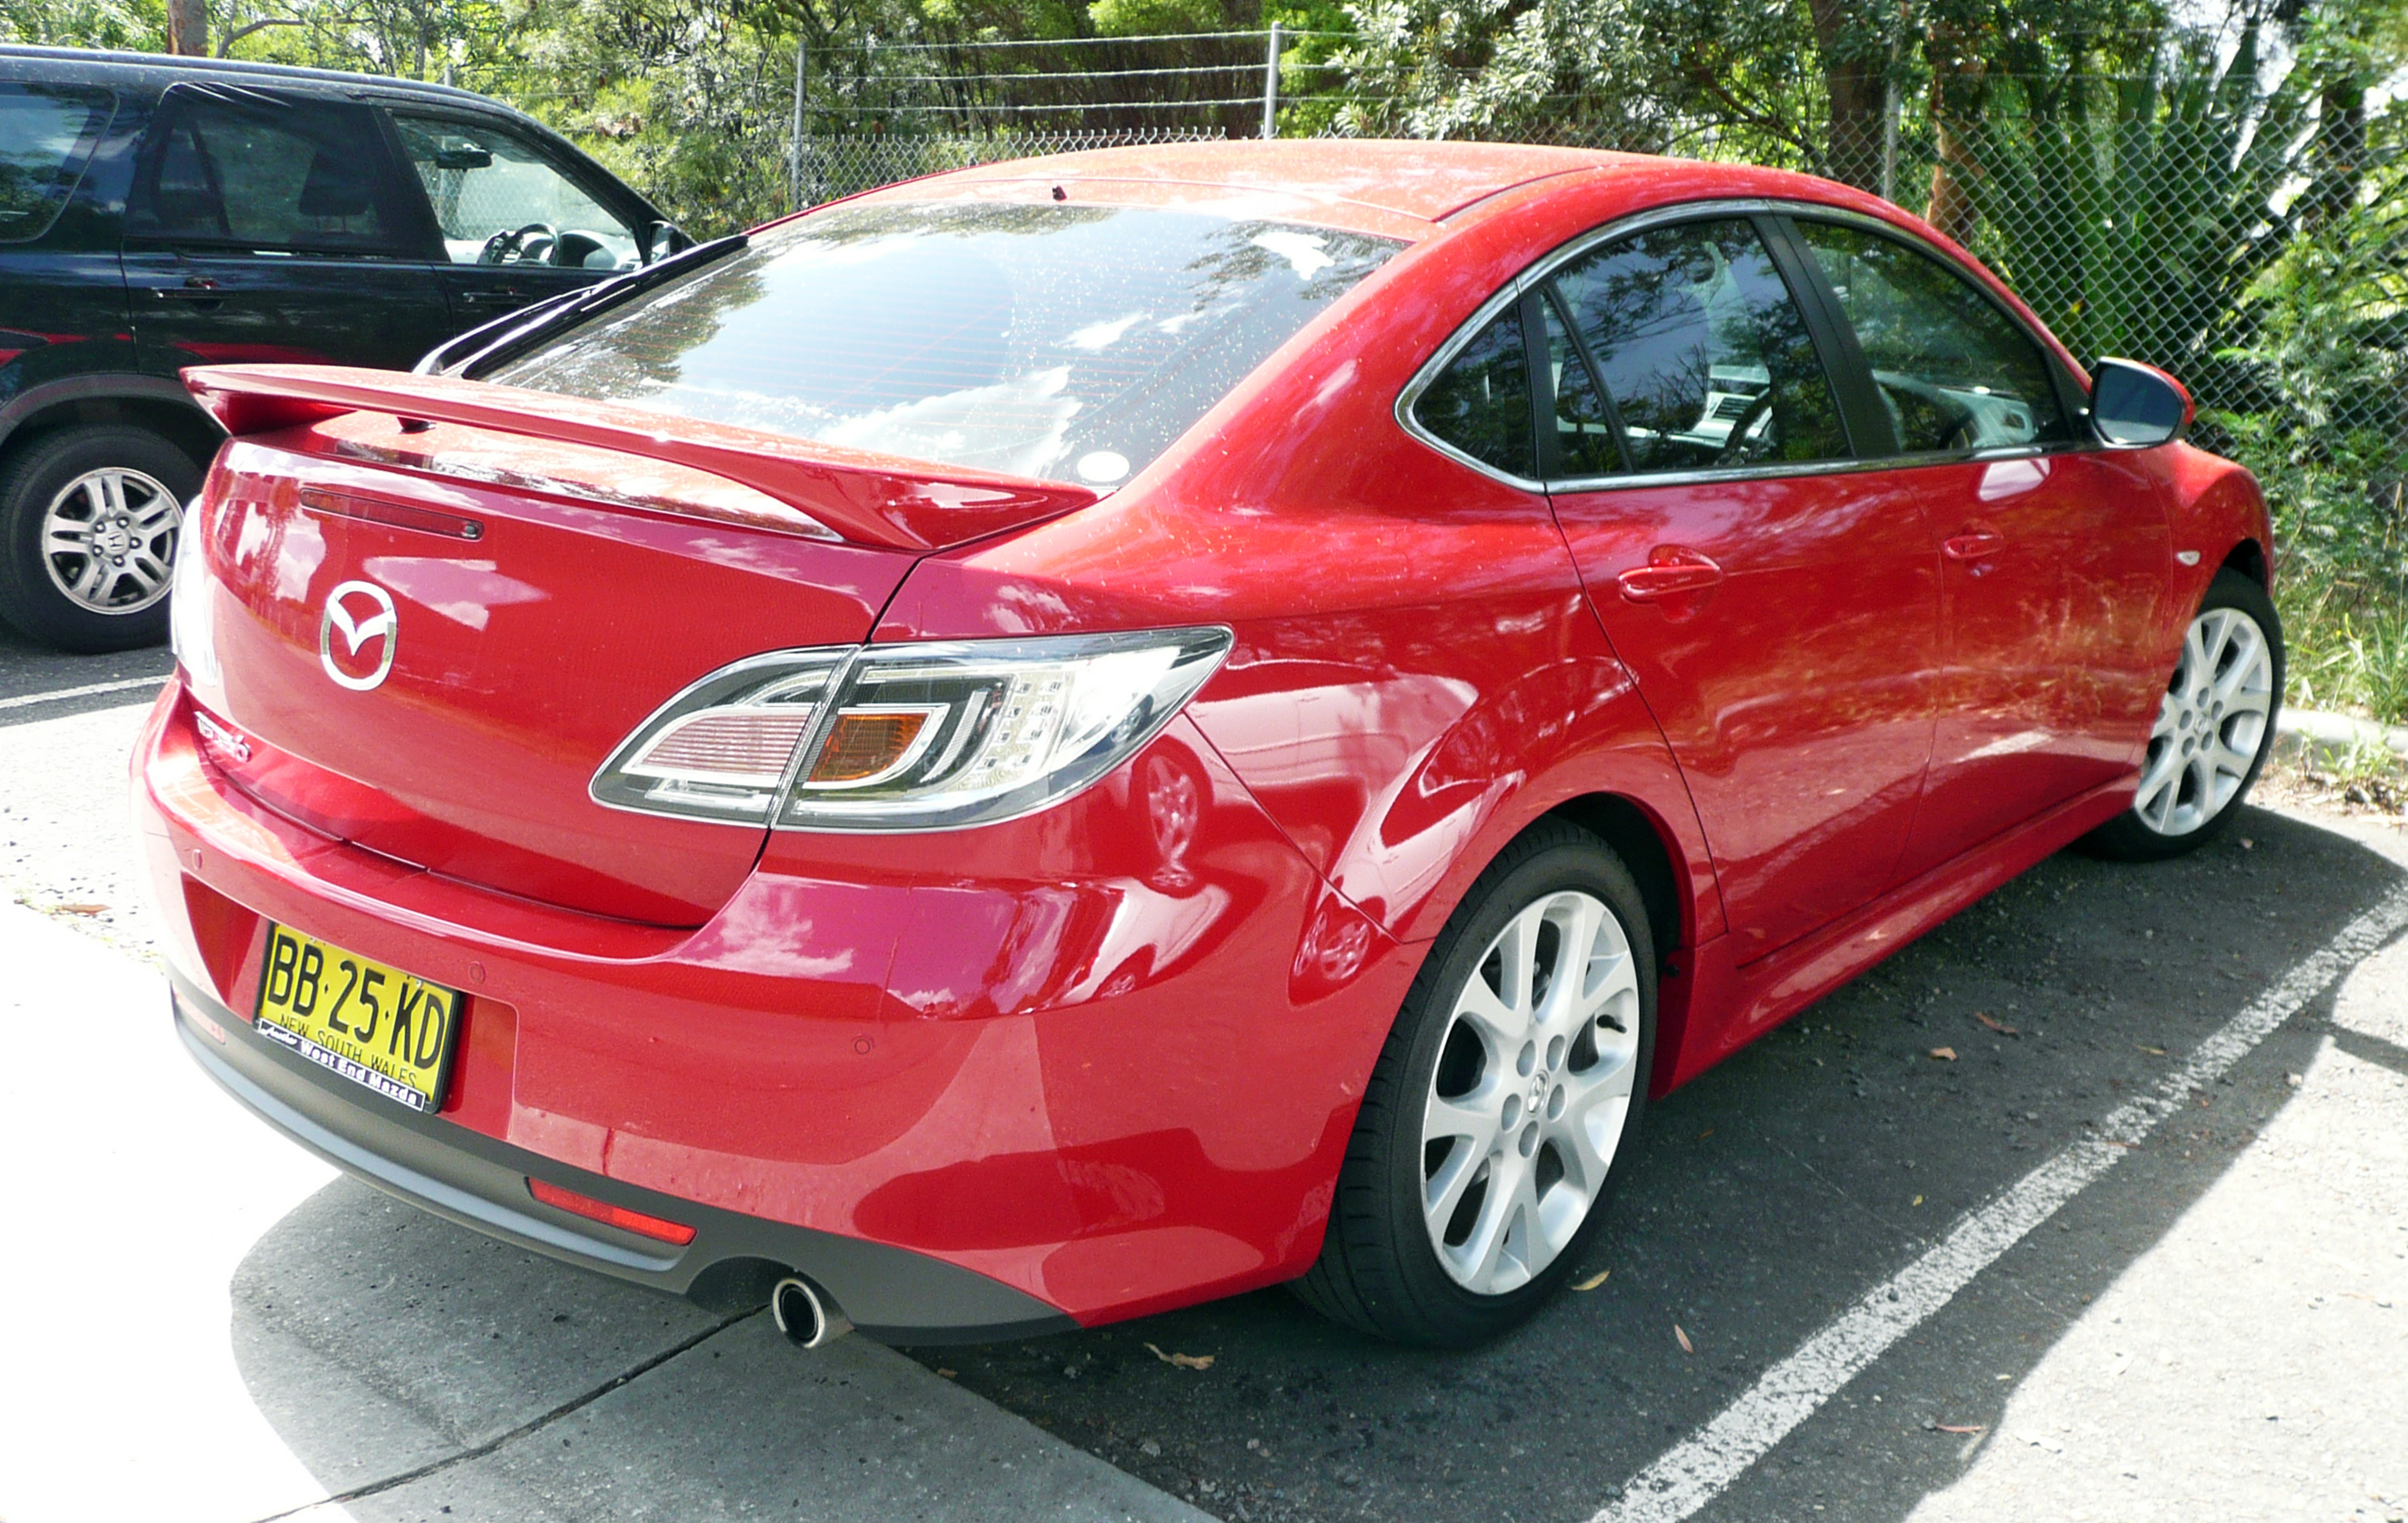 https://upload.wikimedia.org/wikipedia/commons/8/8f/2009_Mazda6_%28GH_MY09%29_Luxury_Sports_hatchback_%282009-11-29%29.jpg